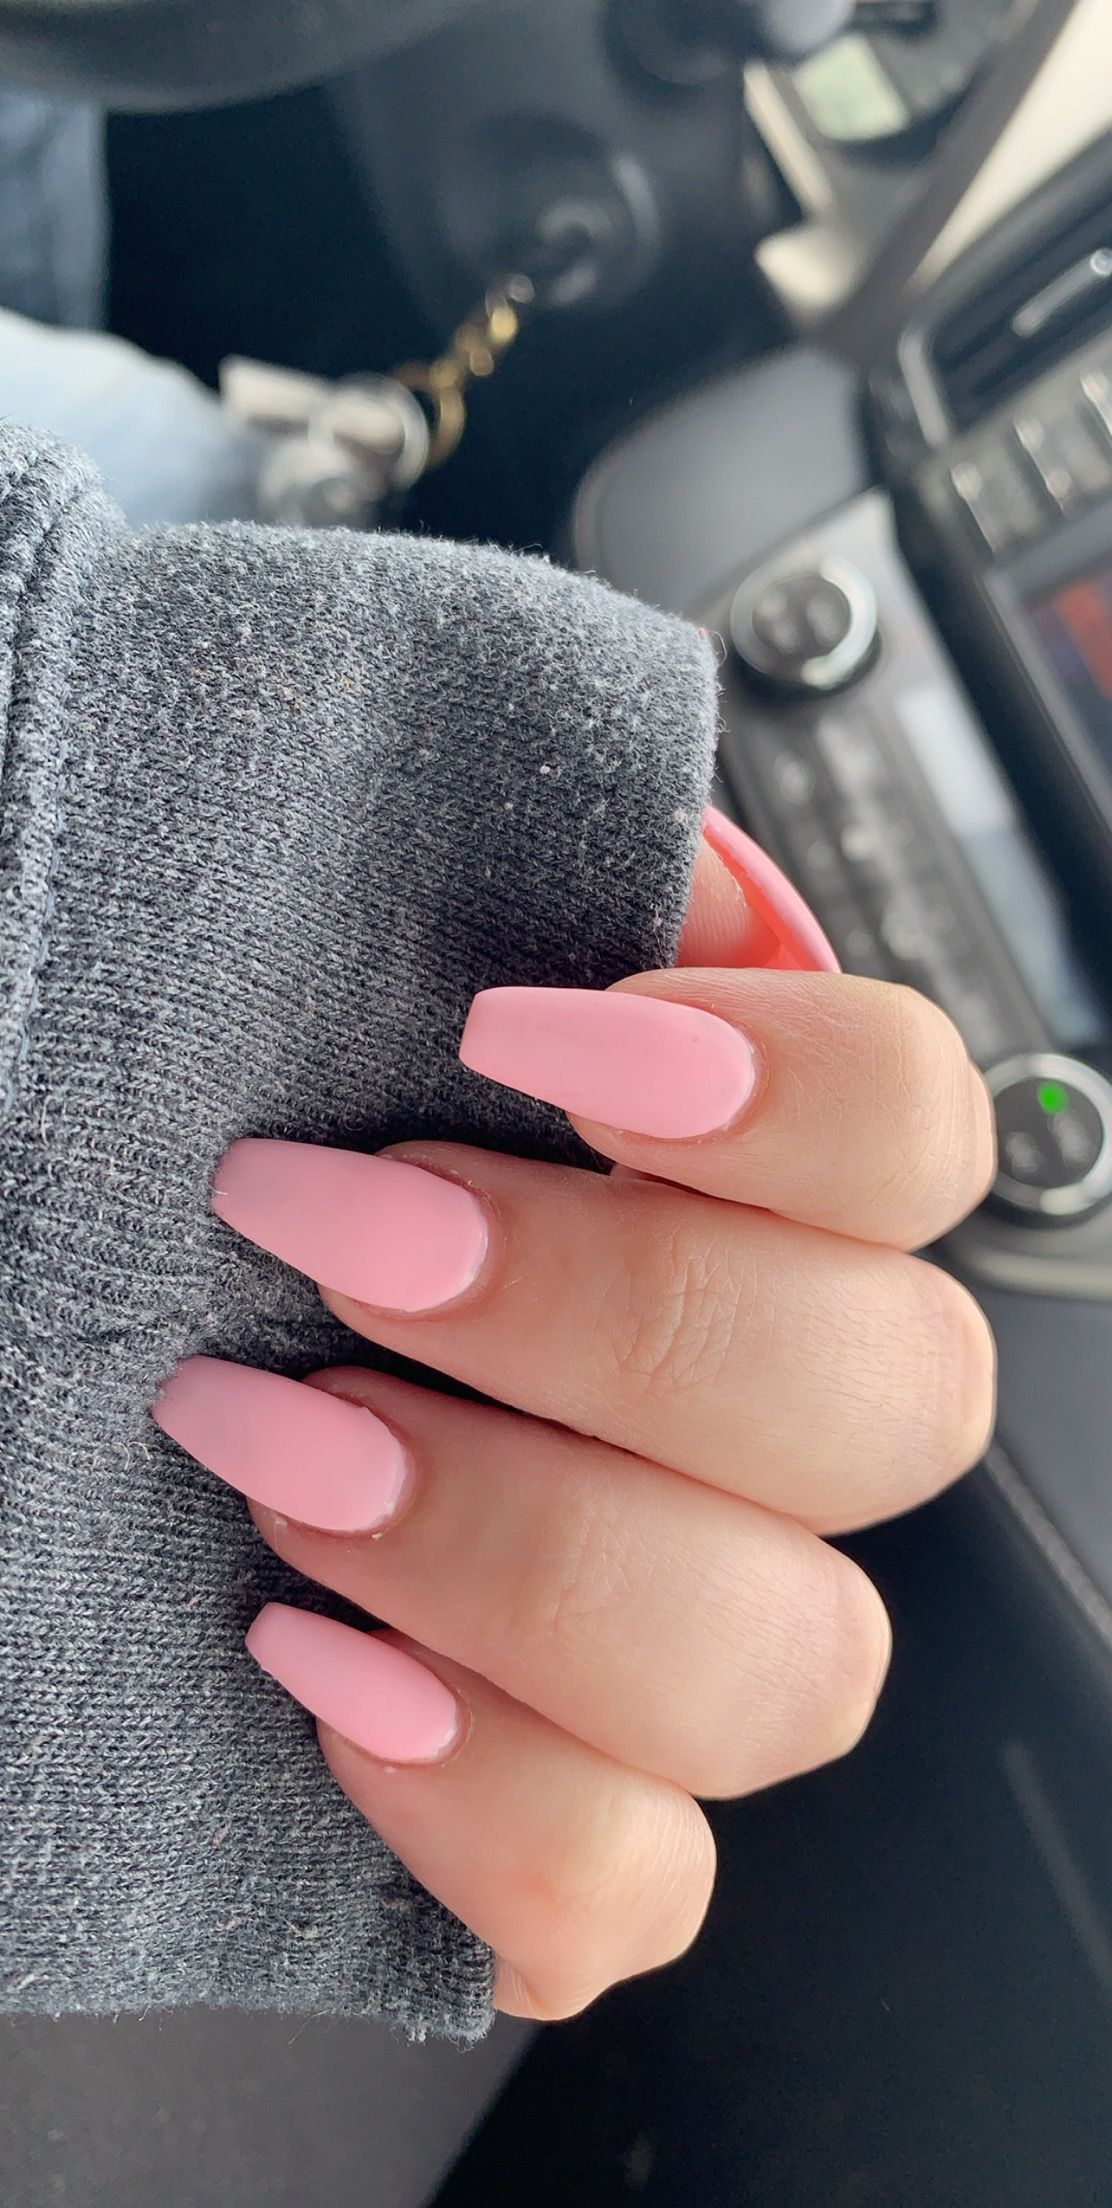 Matte Baby Pink Coffin Acrylic Nails By Aprilogea Pink Acrylic Nails Pink Manicure Coffin Nails Long